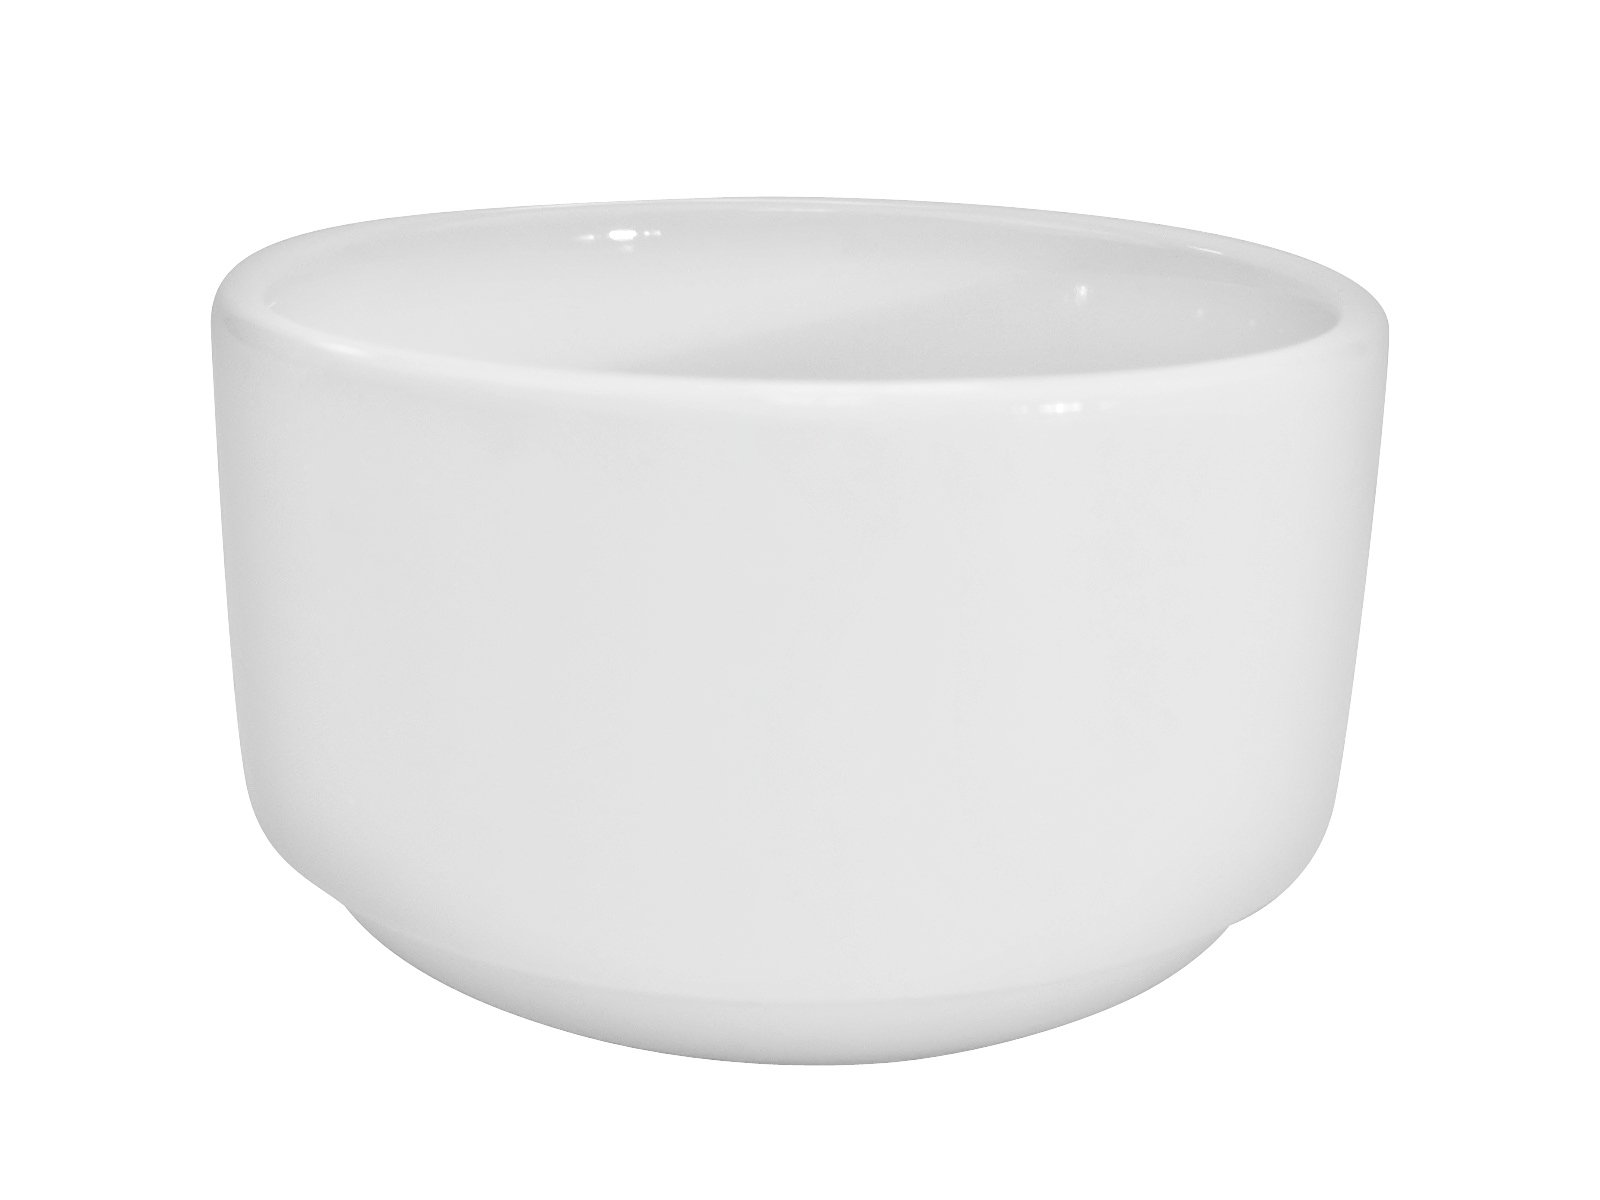 CAC China RCN-48 Clinton Rolled Edge 4-Inch Super White Porcelain Bouillon, 10-Ounce, Box of 36